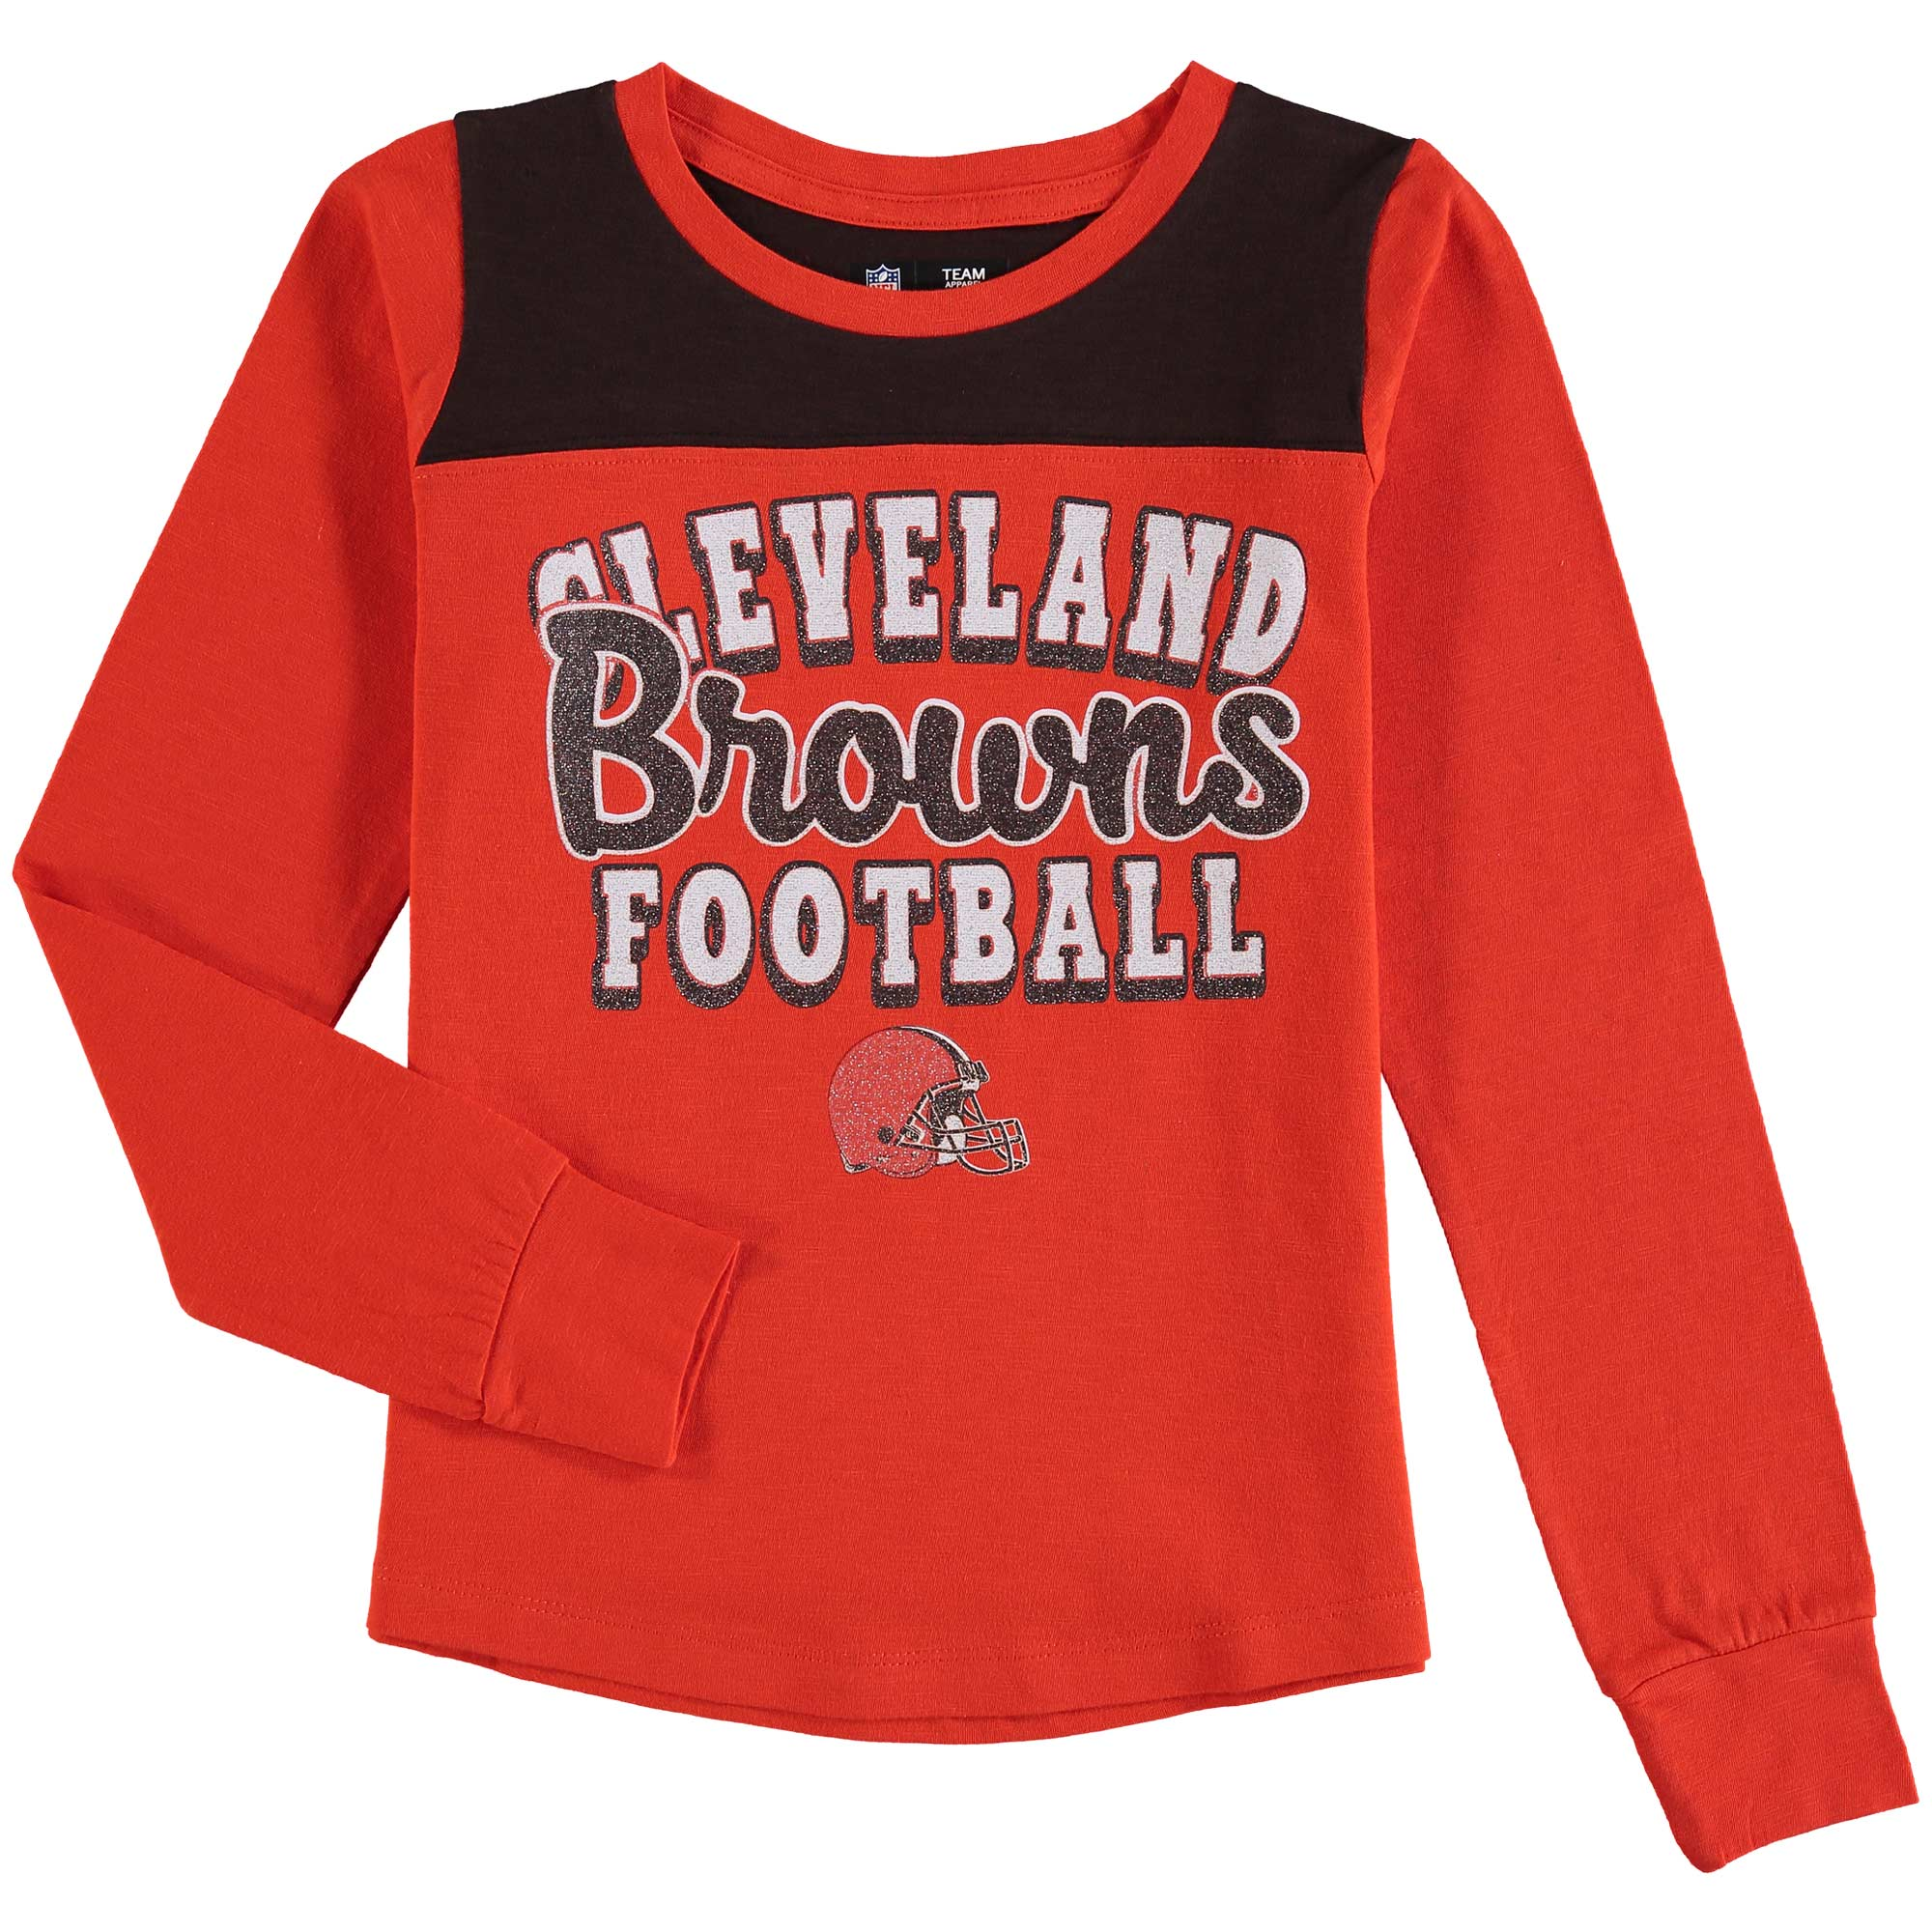 Cleveland Browns 5th & Ocean by New Era Girls Youth Glitter Football Long Sleeve T-Shirt - Orange